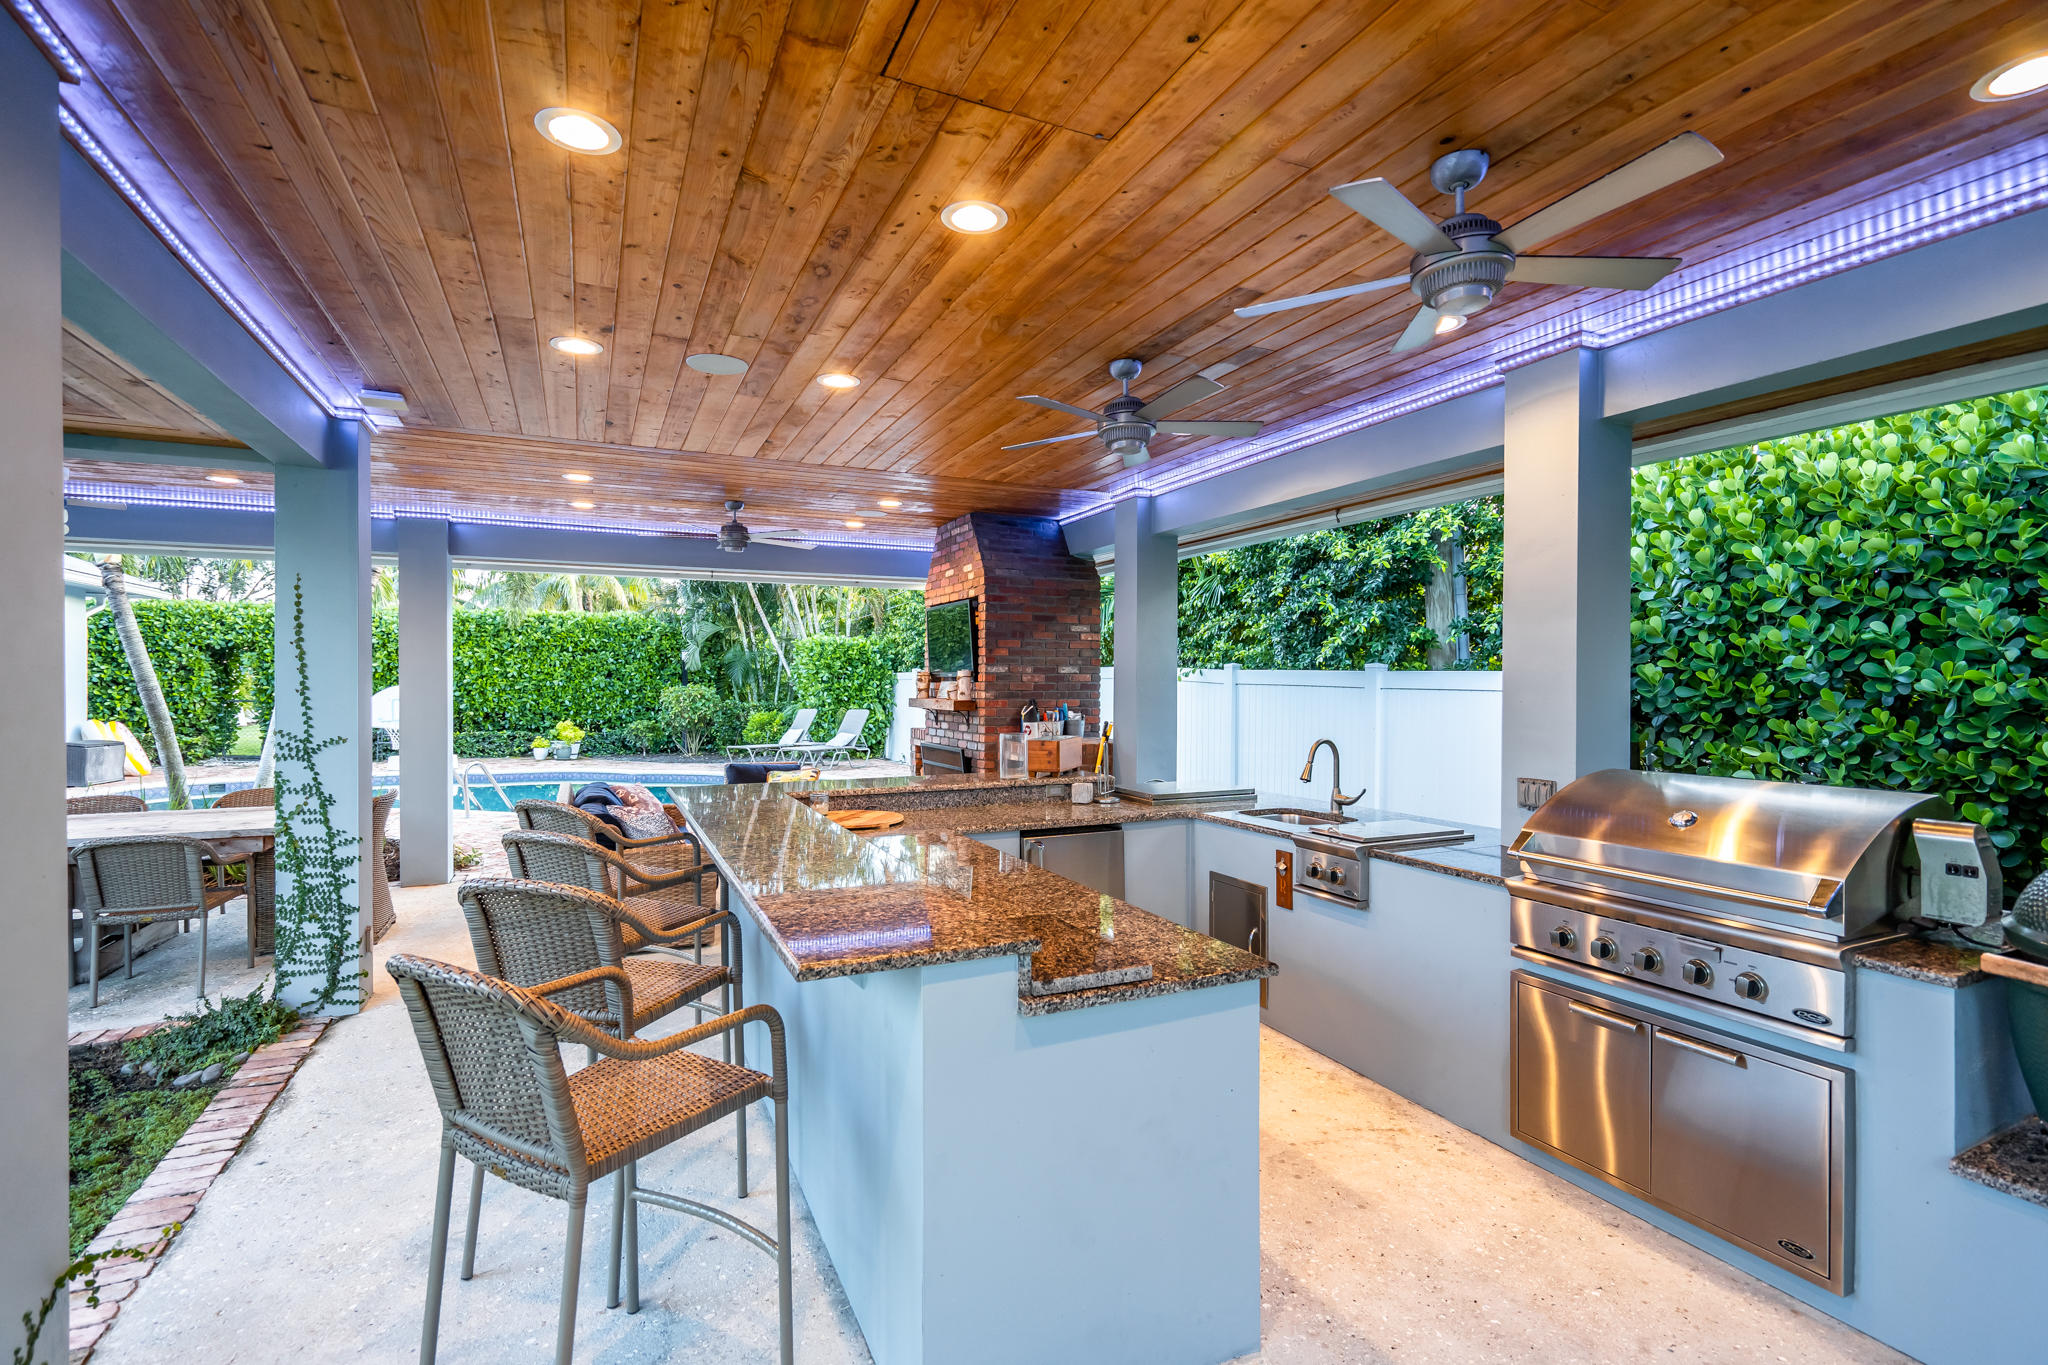 Outdoor kitchen w/ oversized bar area 3